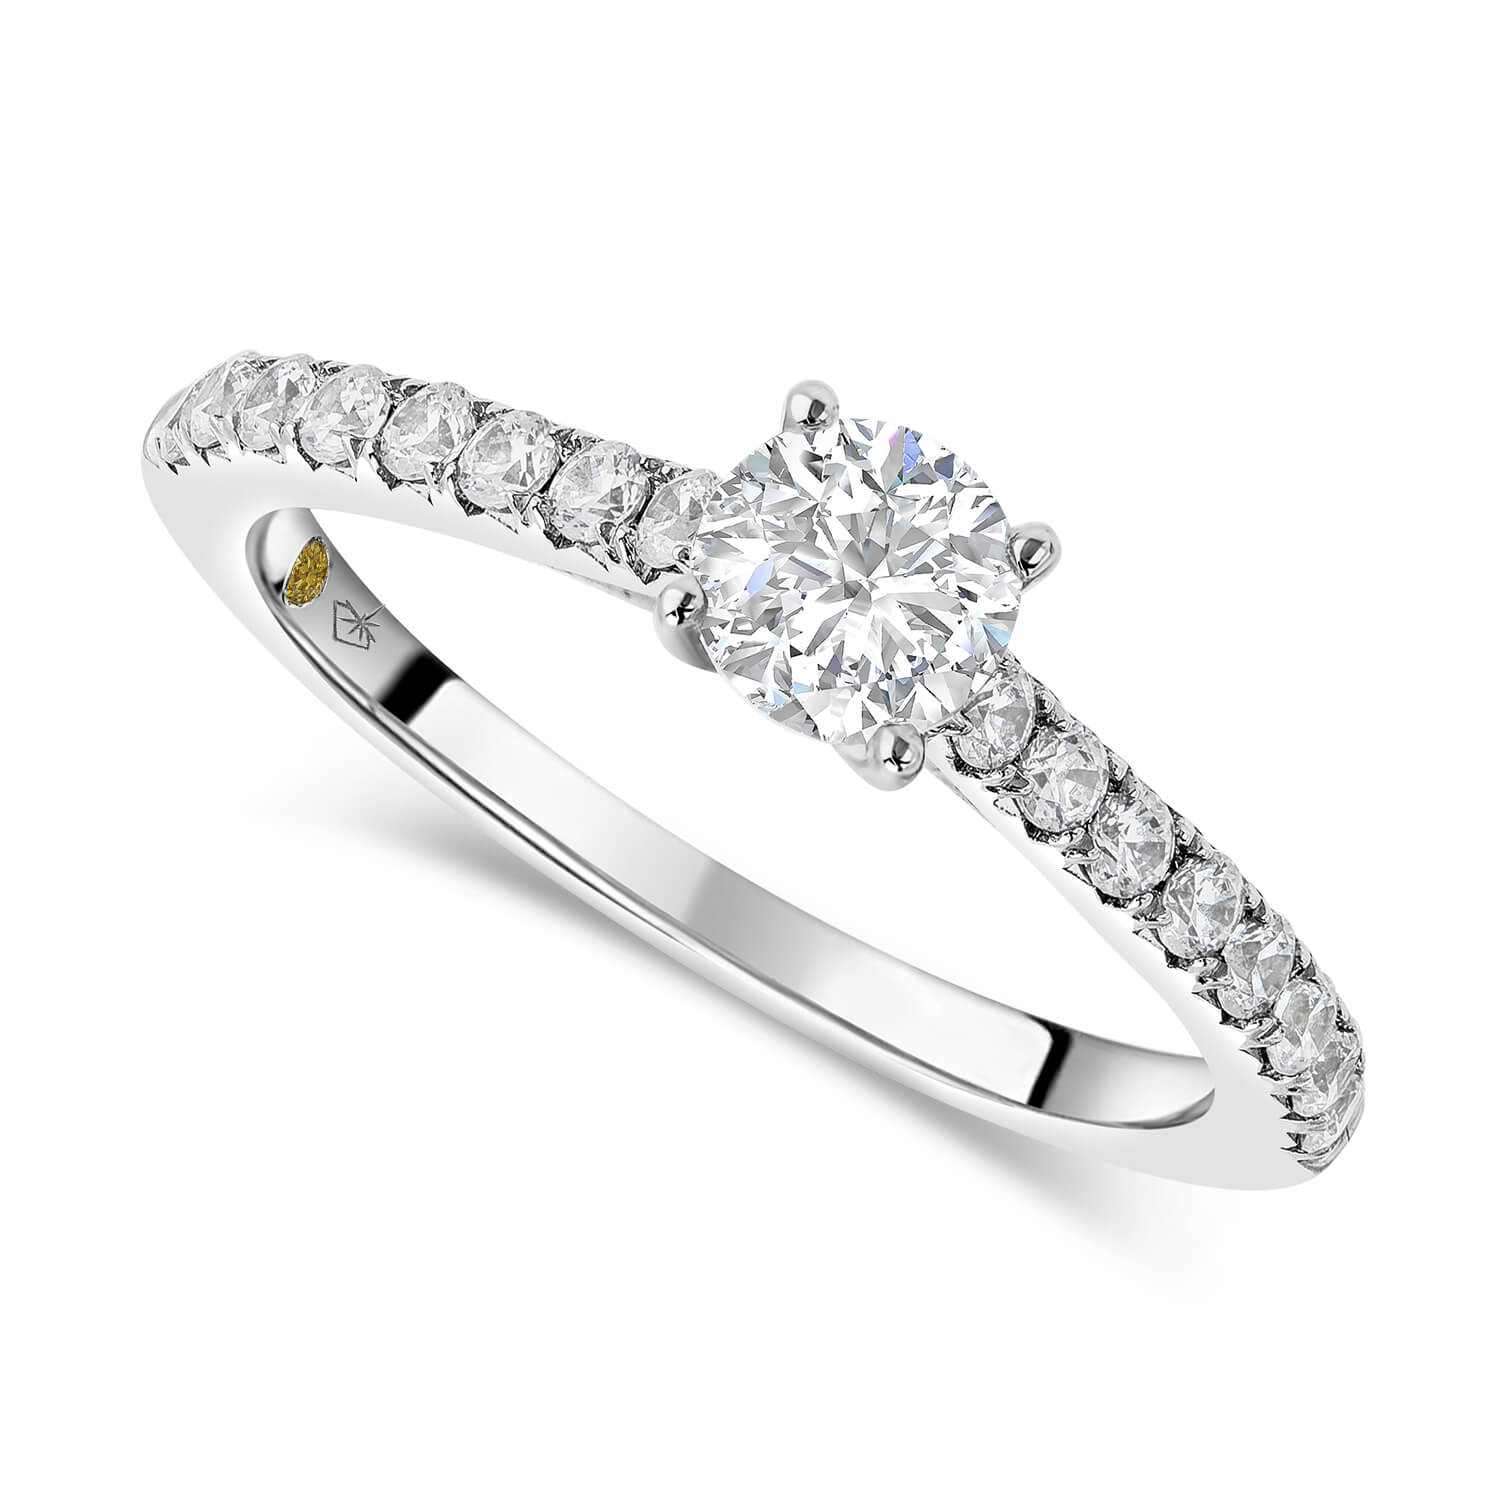 Northern Star 18ct White Gold Solitaire with Shoulders 0.50 Carat Diamond Ring